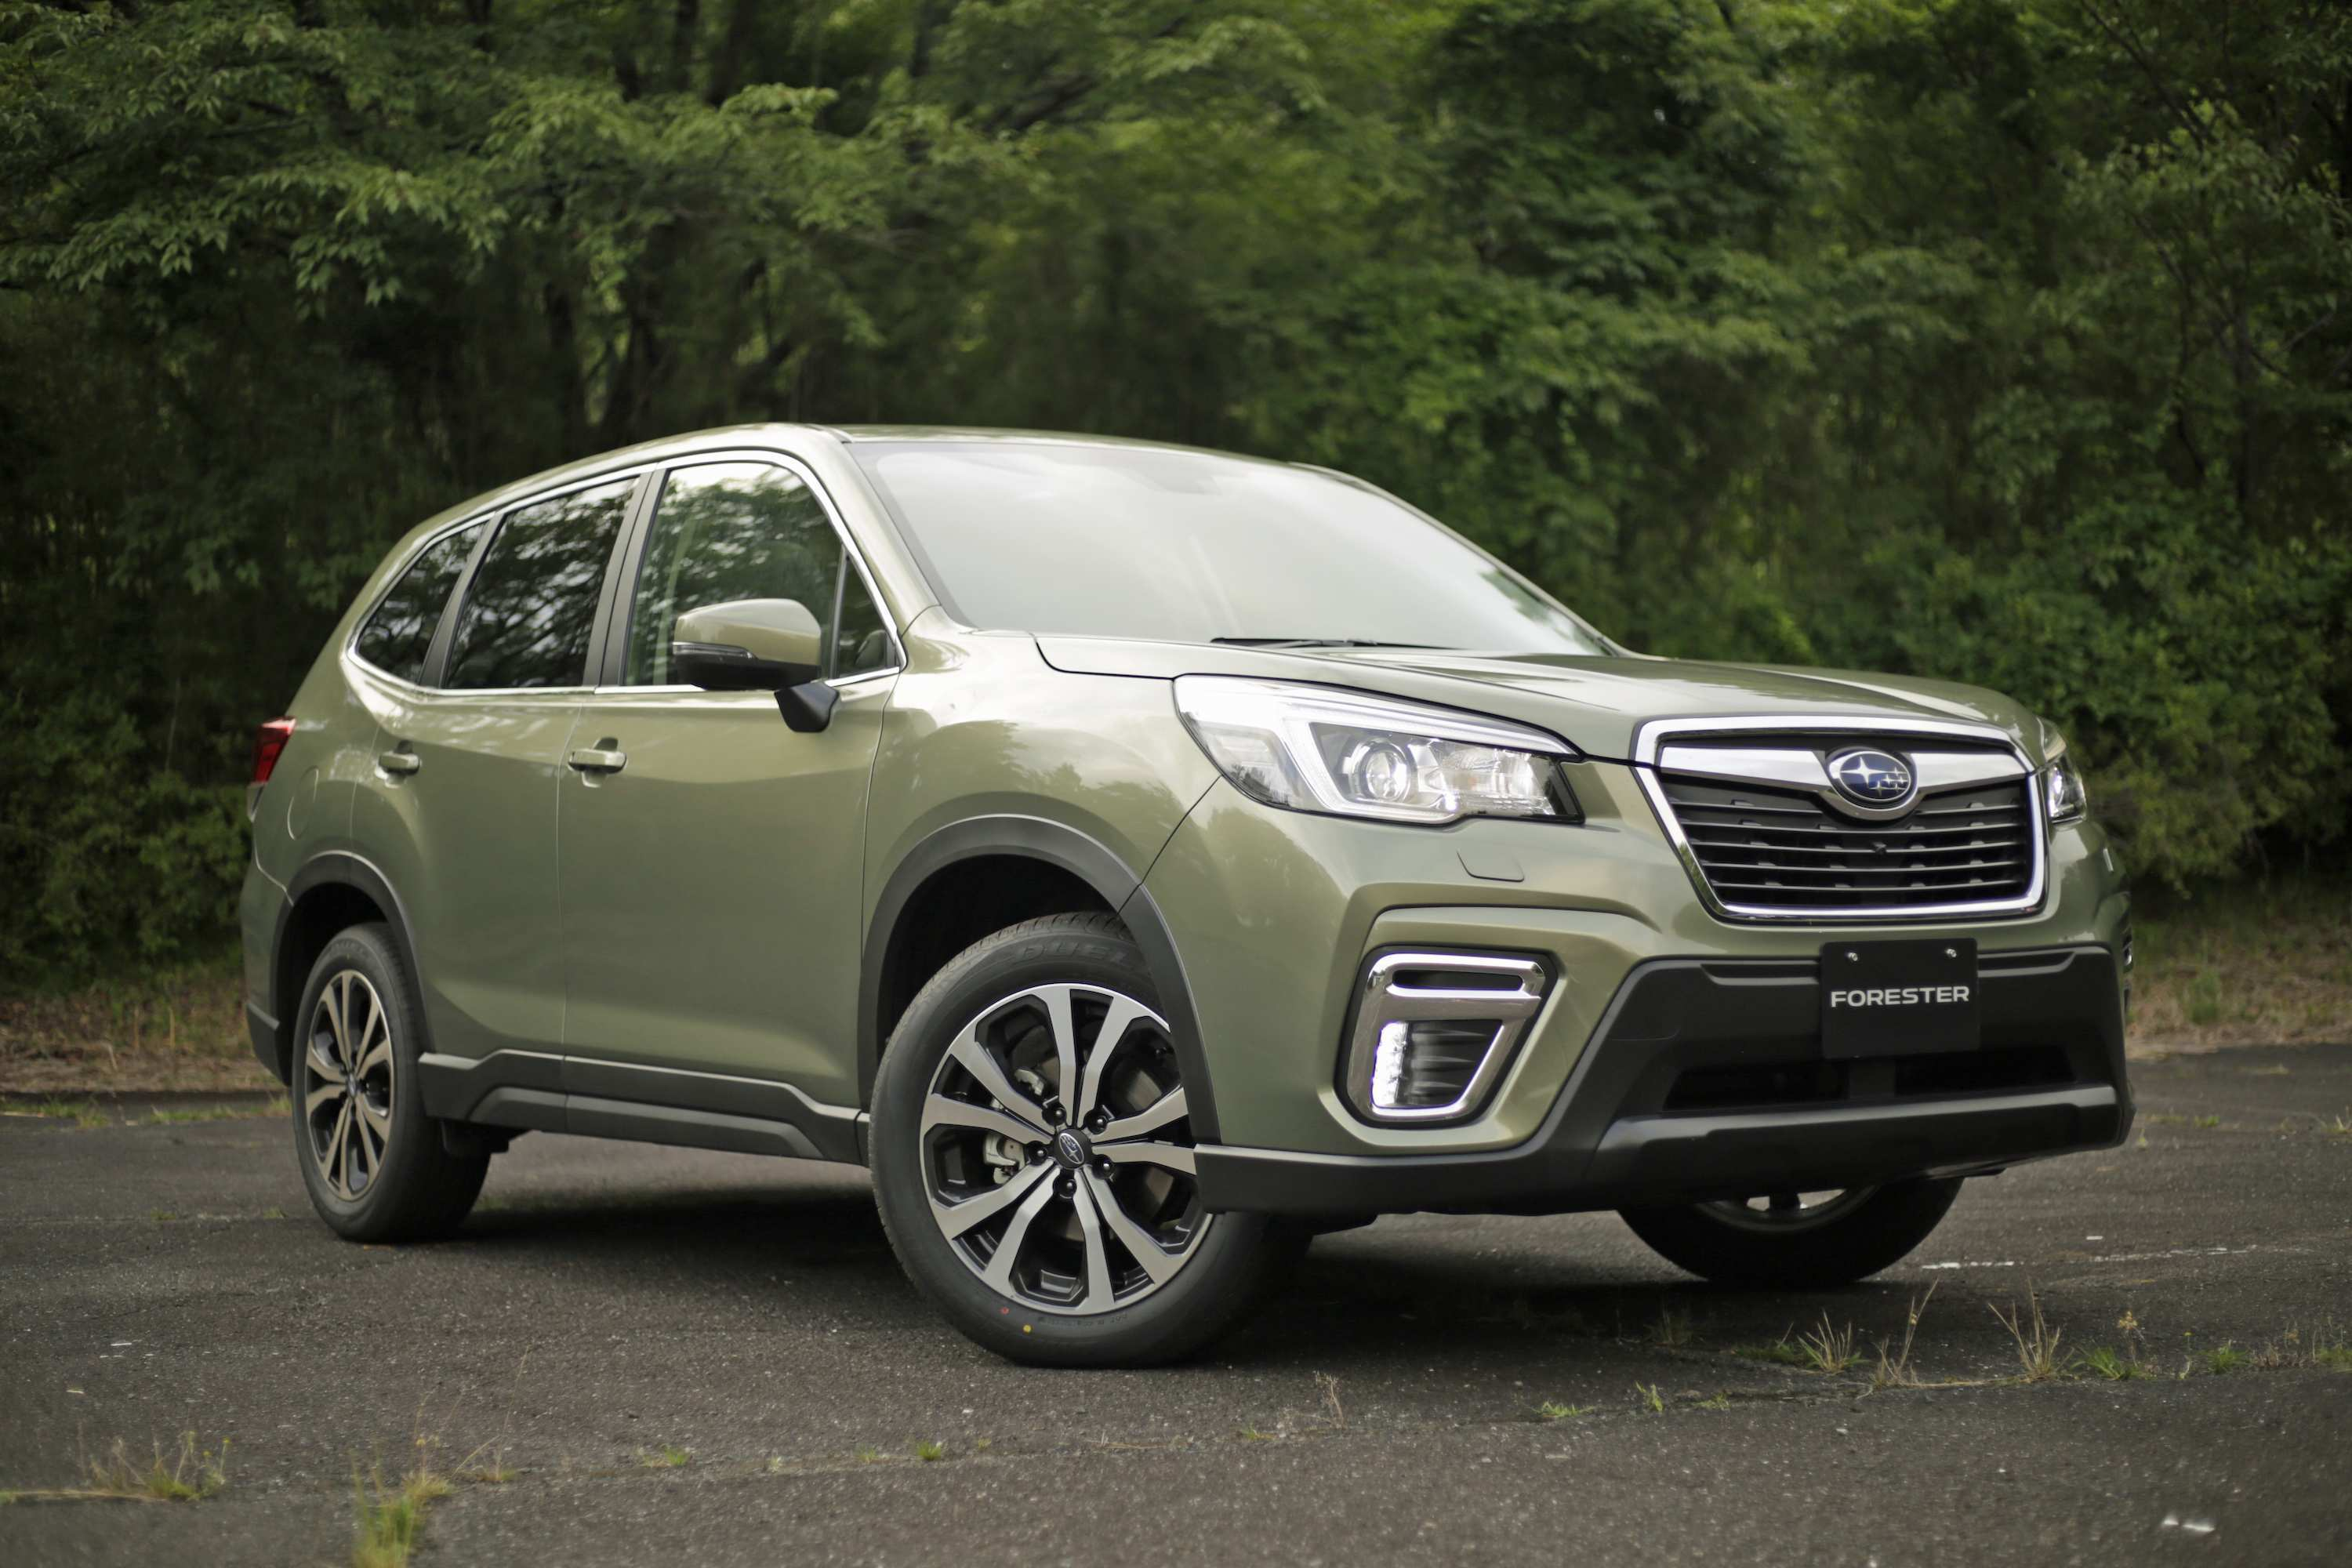 87 Gallery of When Do Subaru 2019 Come Out Review with When Do Subaru 2019 Come Out